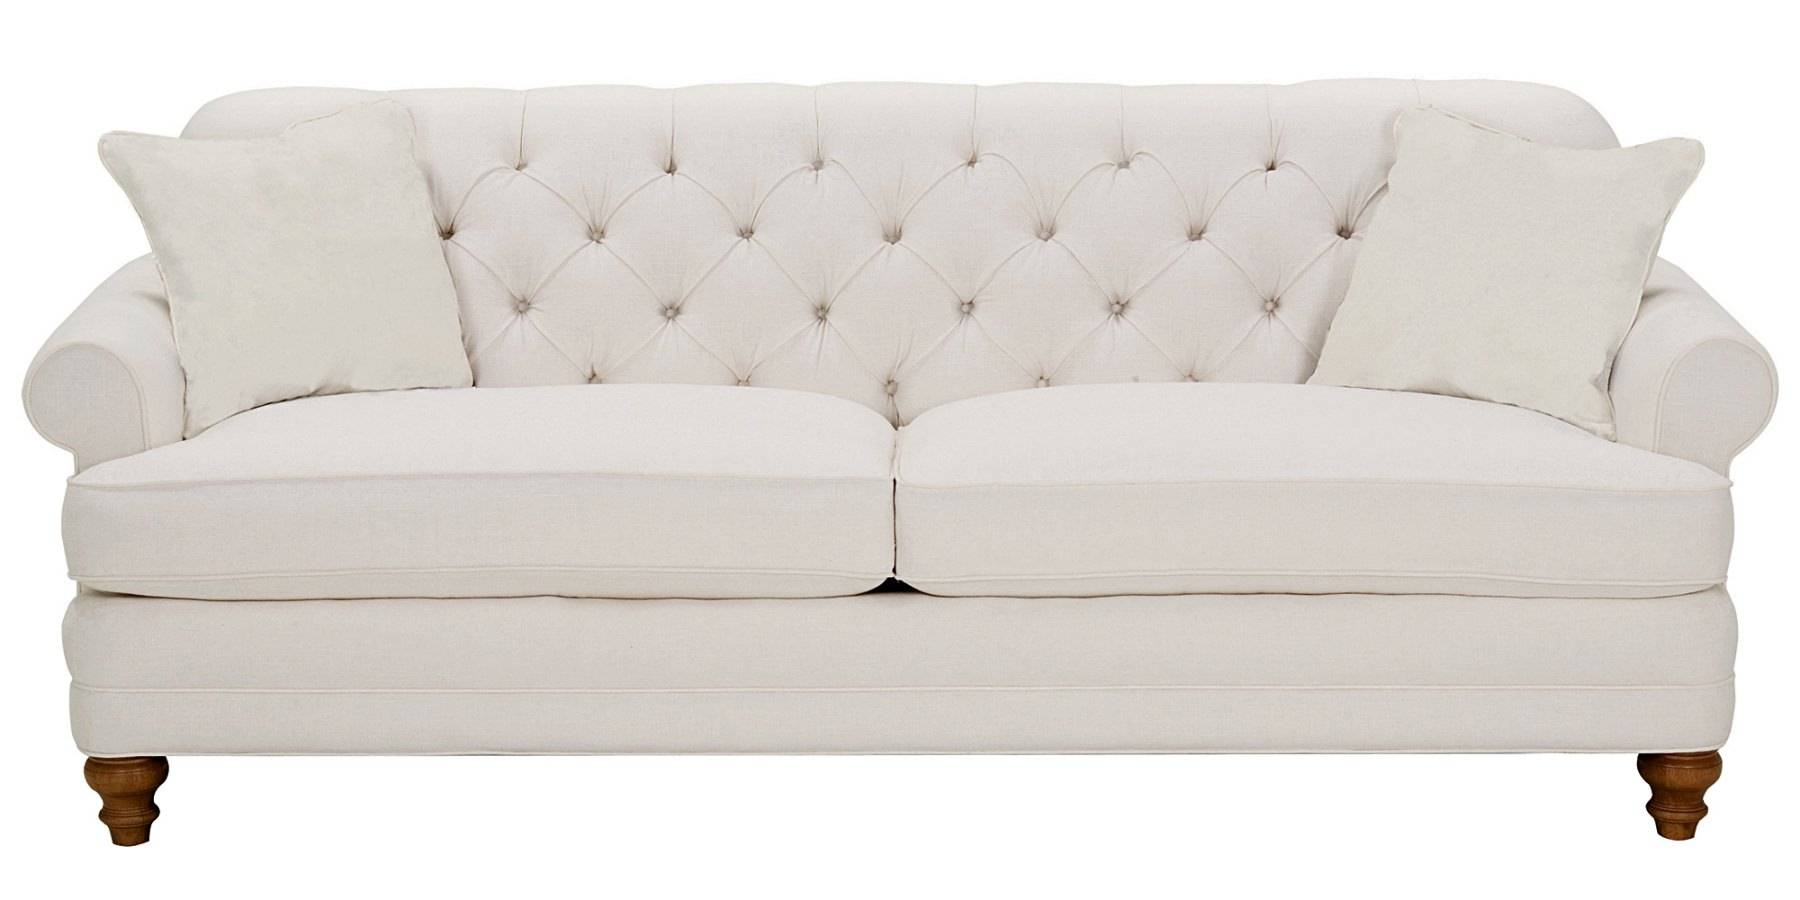 Fabric Upholstered Rolled Arm Button-Back Sofa Set | Club Furniture within Tufted Sleeper Sofas (Image 4 of 15)